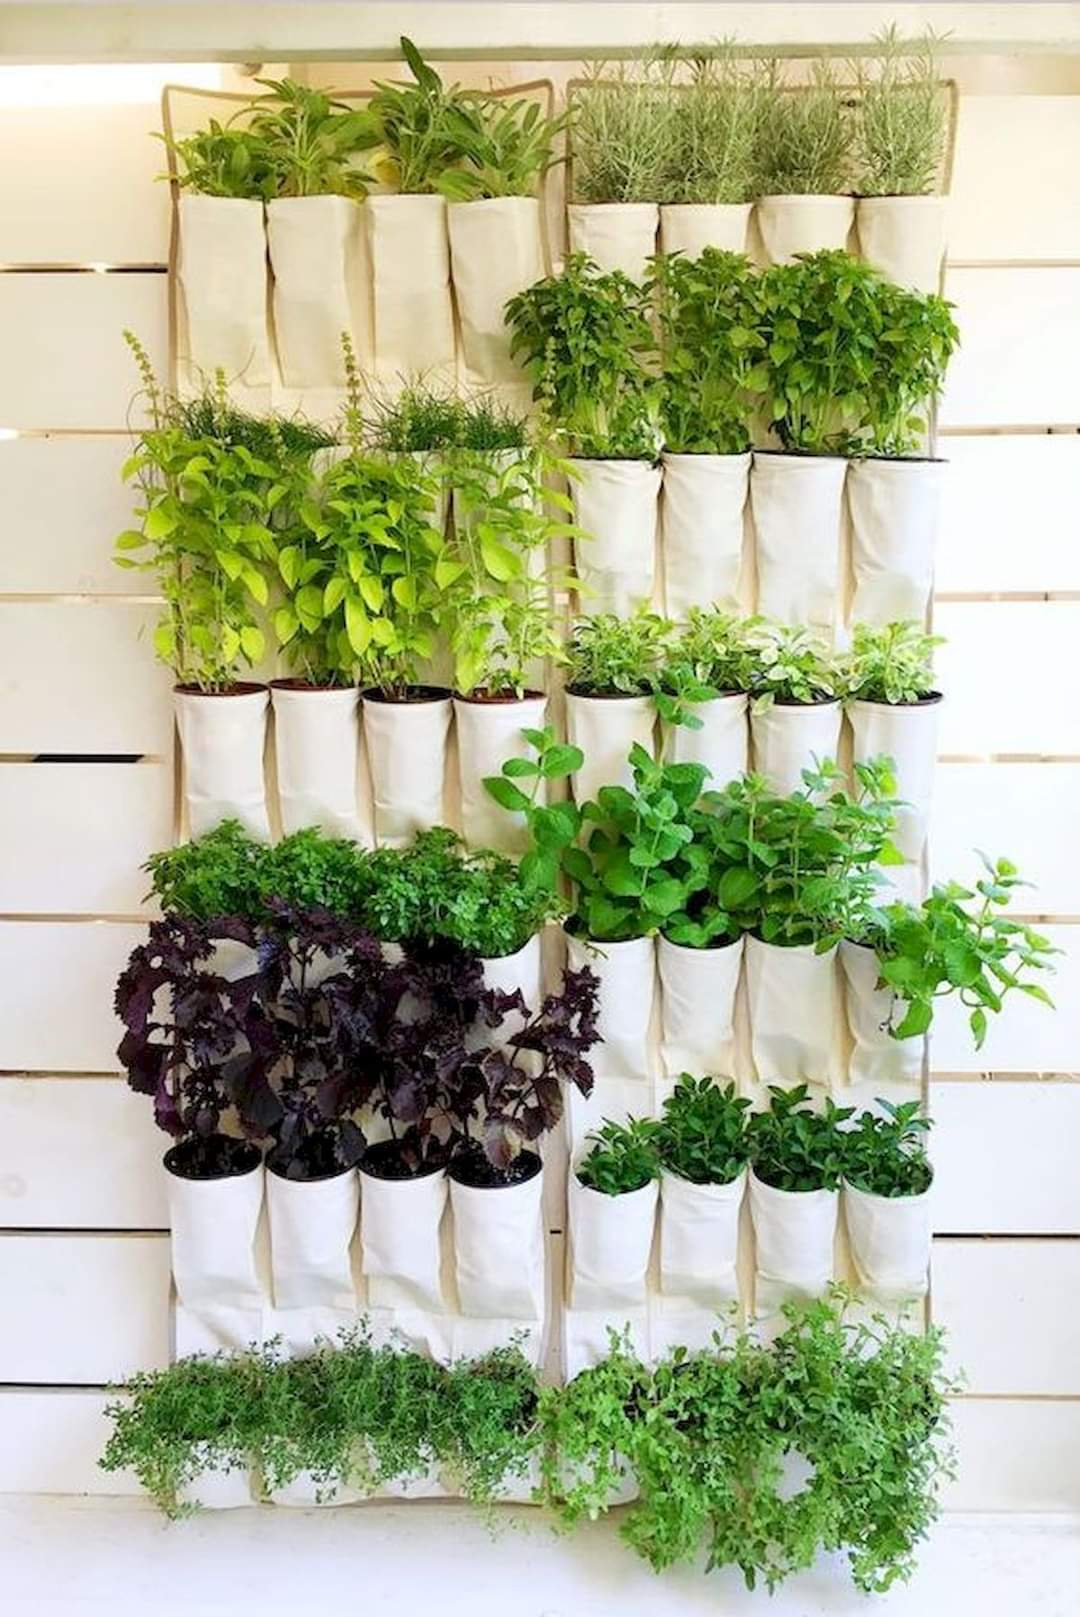 Ideas to Add Plants Inside Your Home (12 Pics)